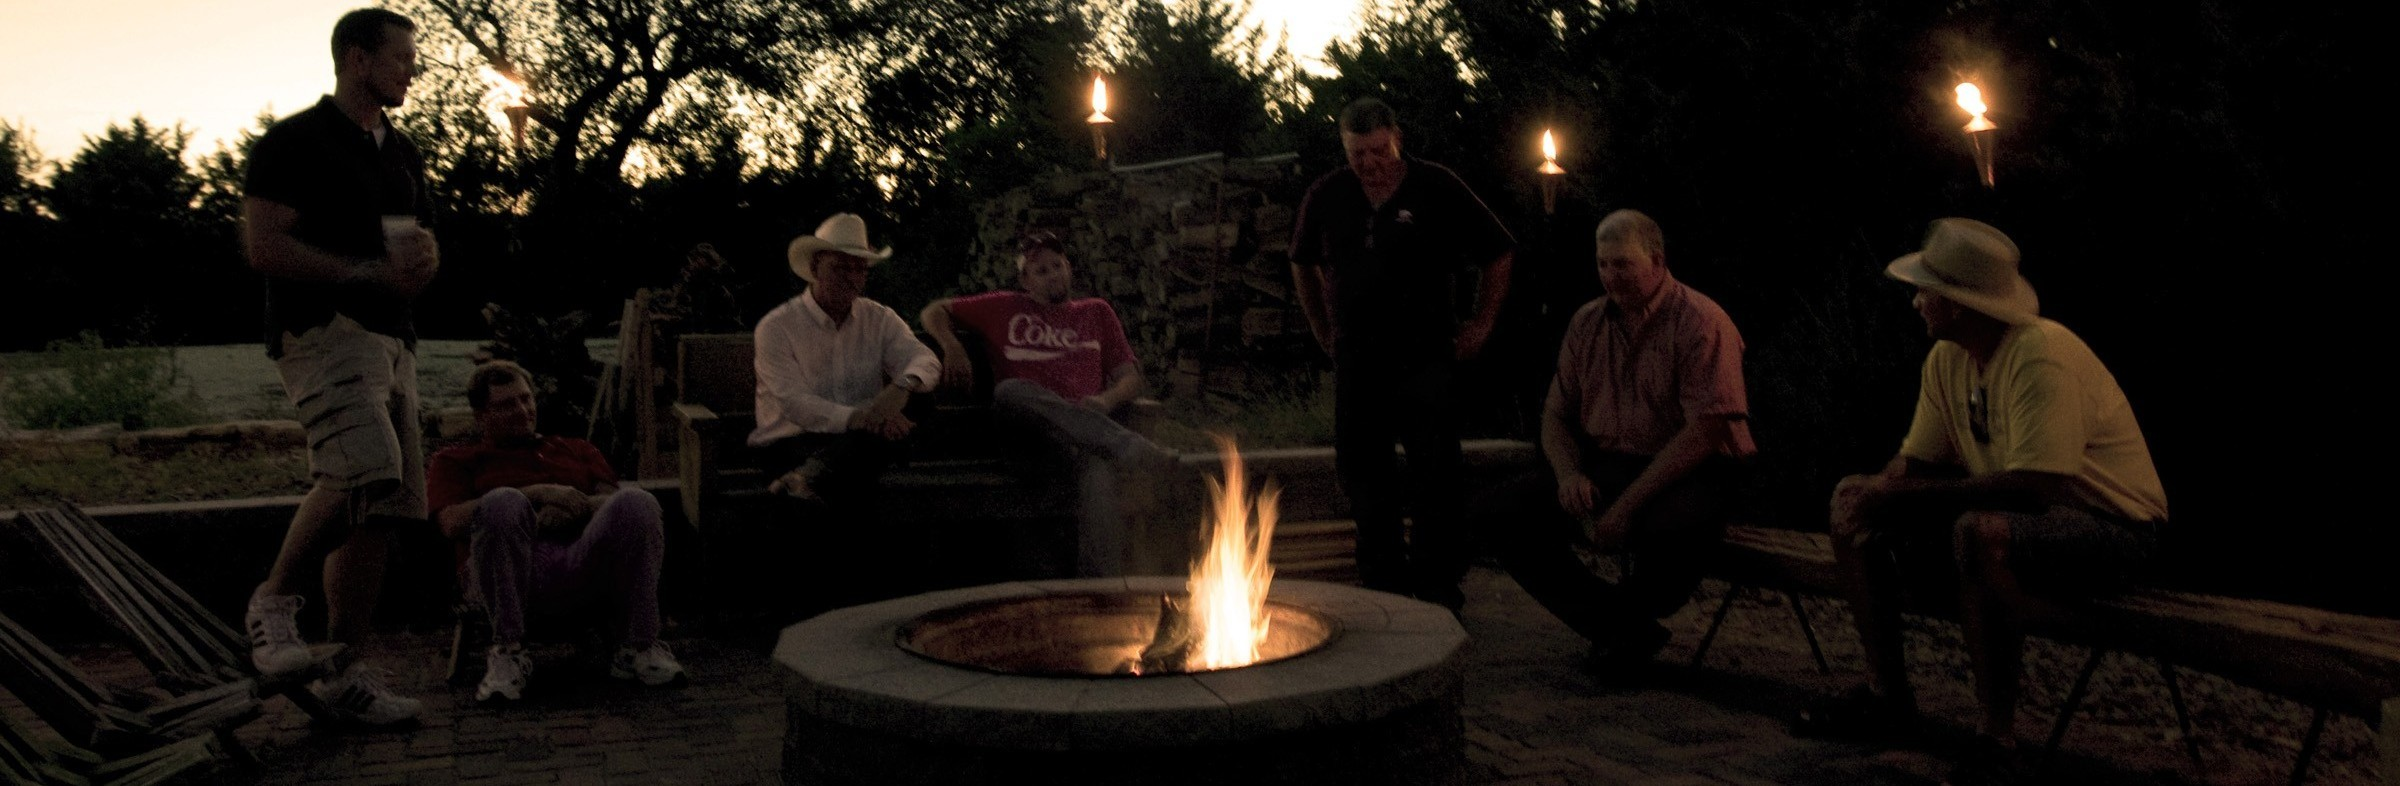 Hanging around the firepit 2